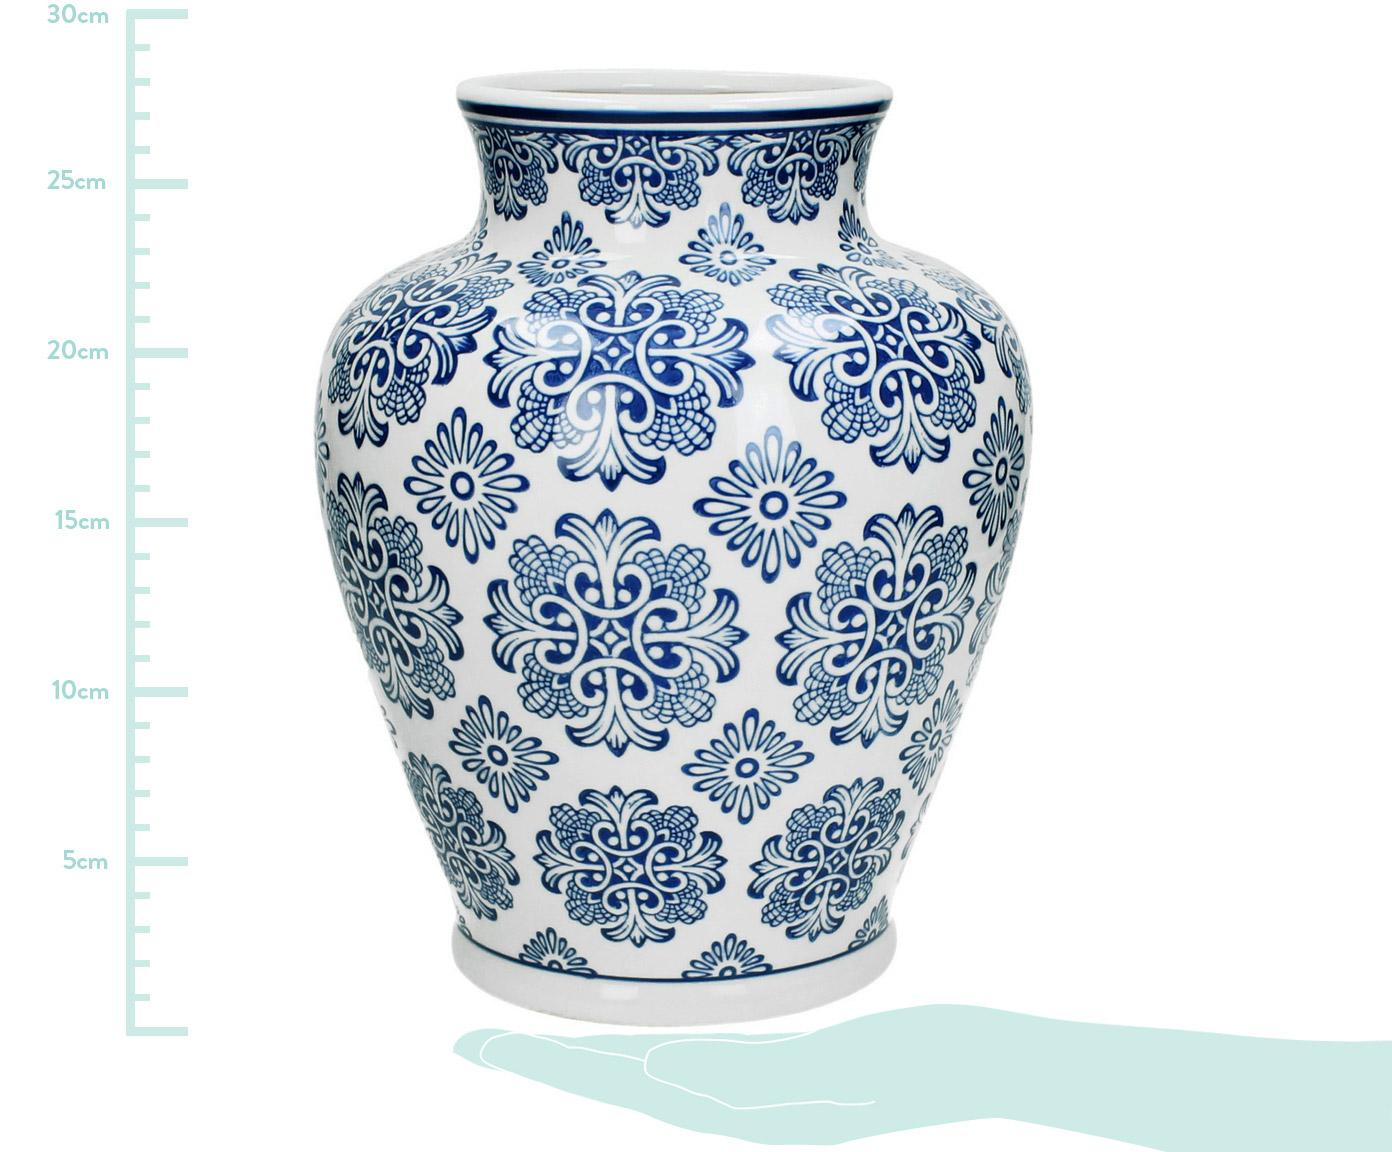 Vaso decorativo in porcellana Lin, Porcellana non impermeabile, Bianco, blu, Ø 21 x Alt. 28 cm